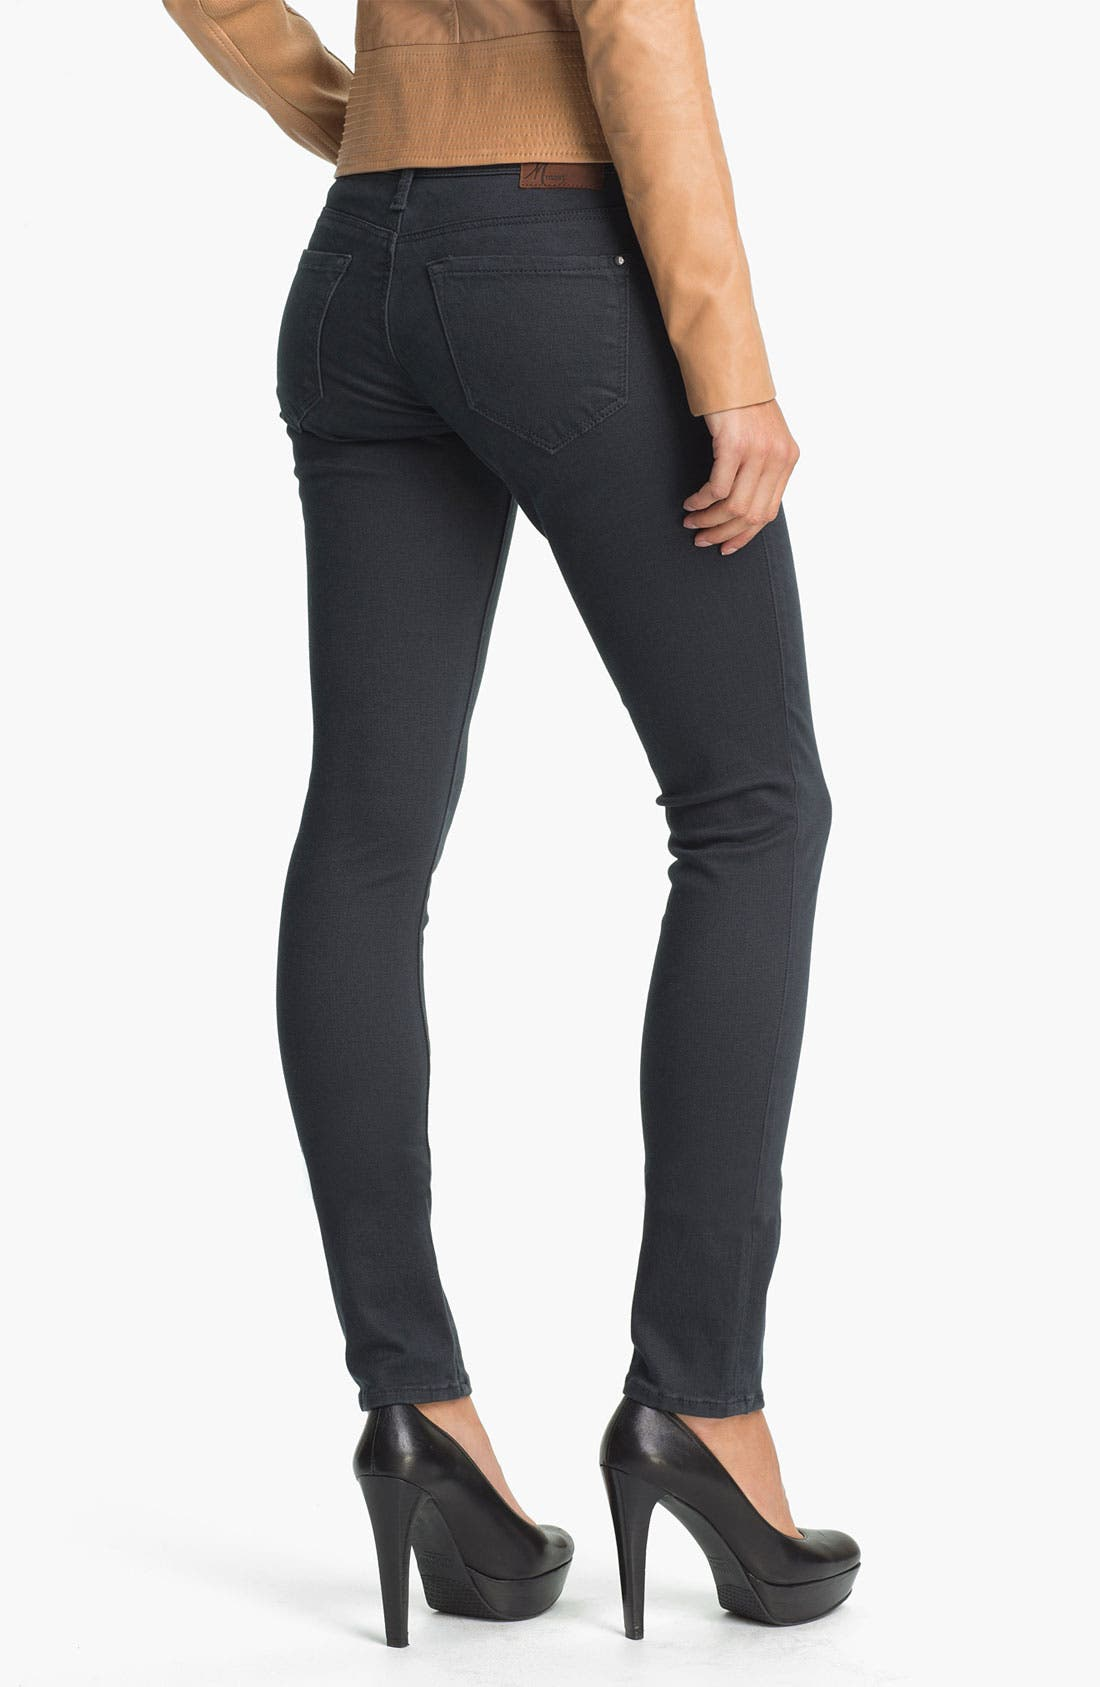 Alternate Image 2  - Mavi Jeans 'Serena' Low Rise Skinny  Jeans (Sueded Granite) (Online Exclusive)